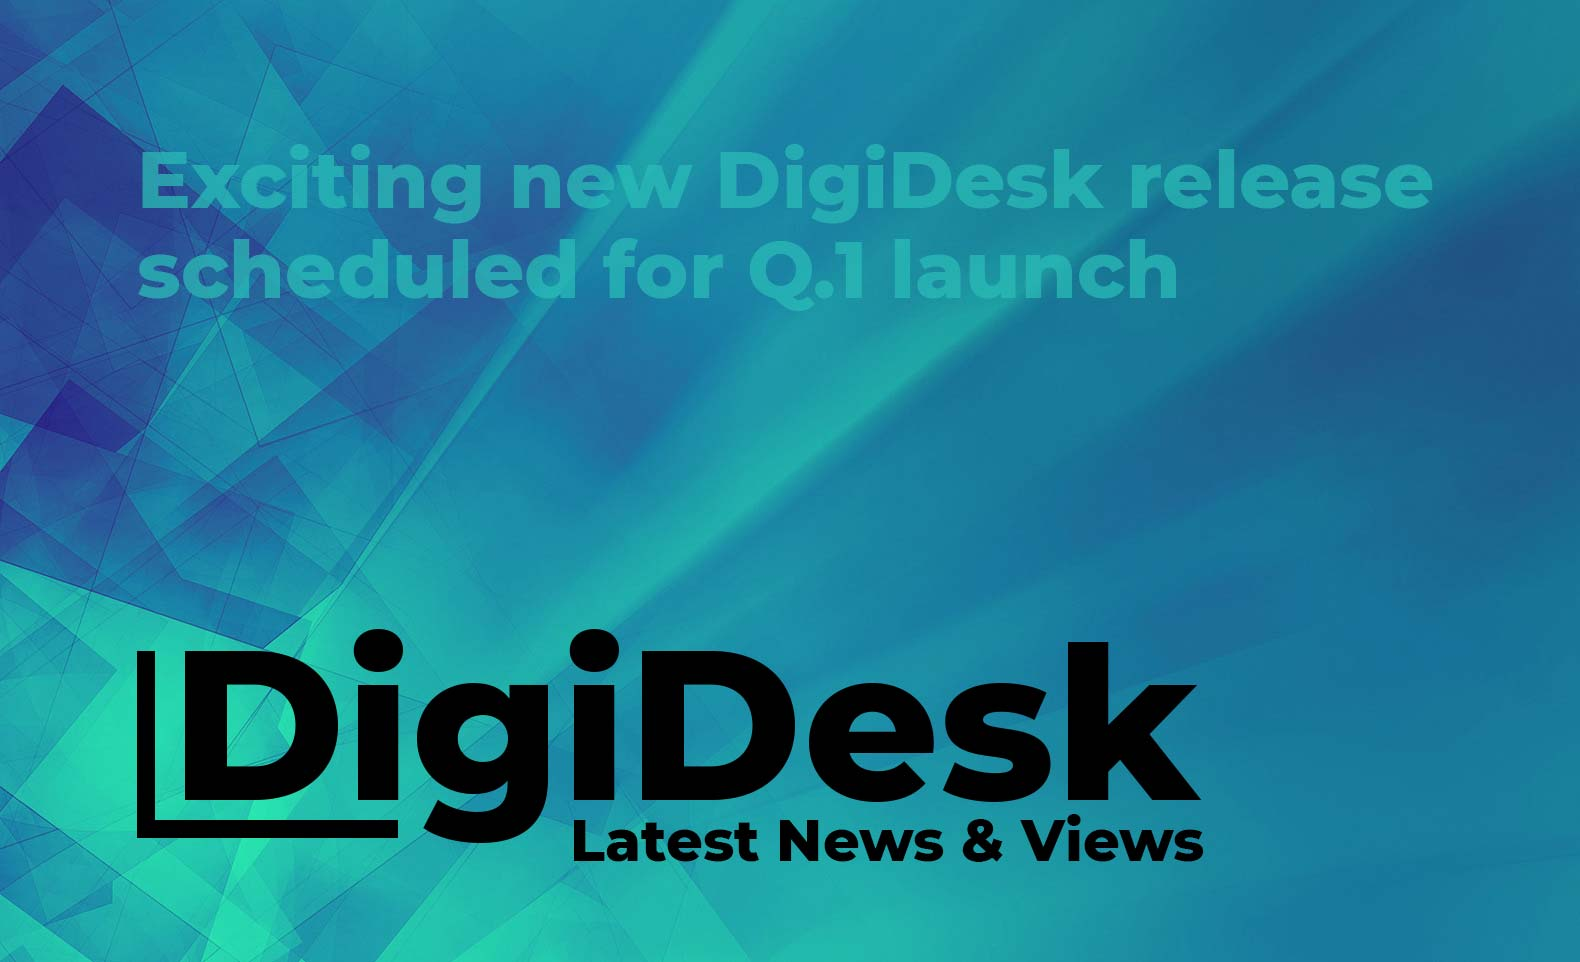 Blog banner - Exciting new DigiDesk release scheduled for Q1 launch